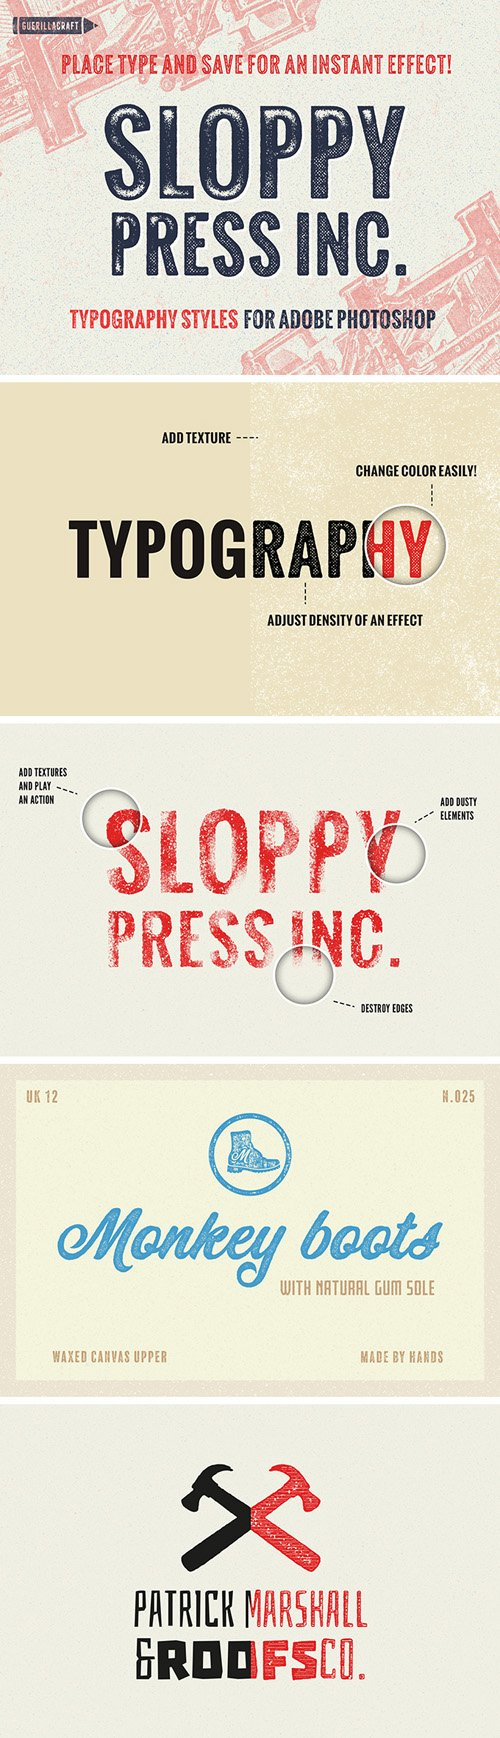 Sloppy Press Typography Styles for Adobe Photoshop [ASL/ABR/ATN/PSD/PNG]